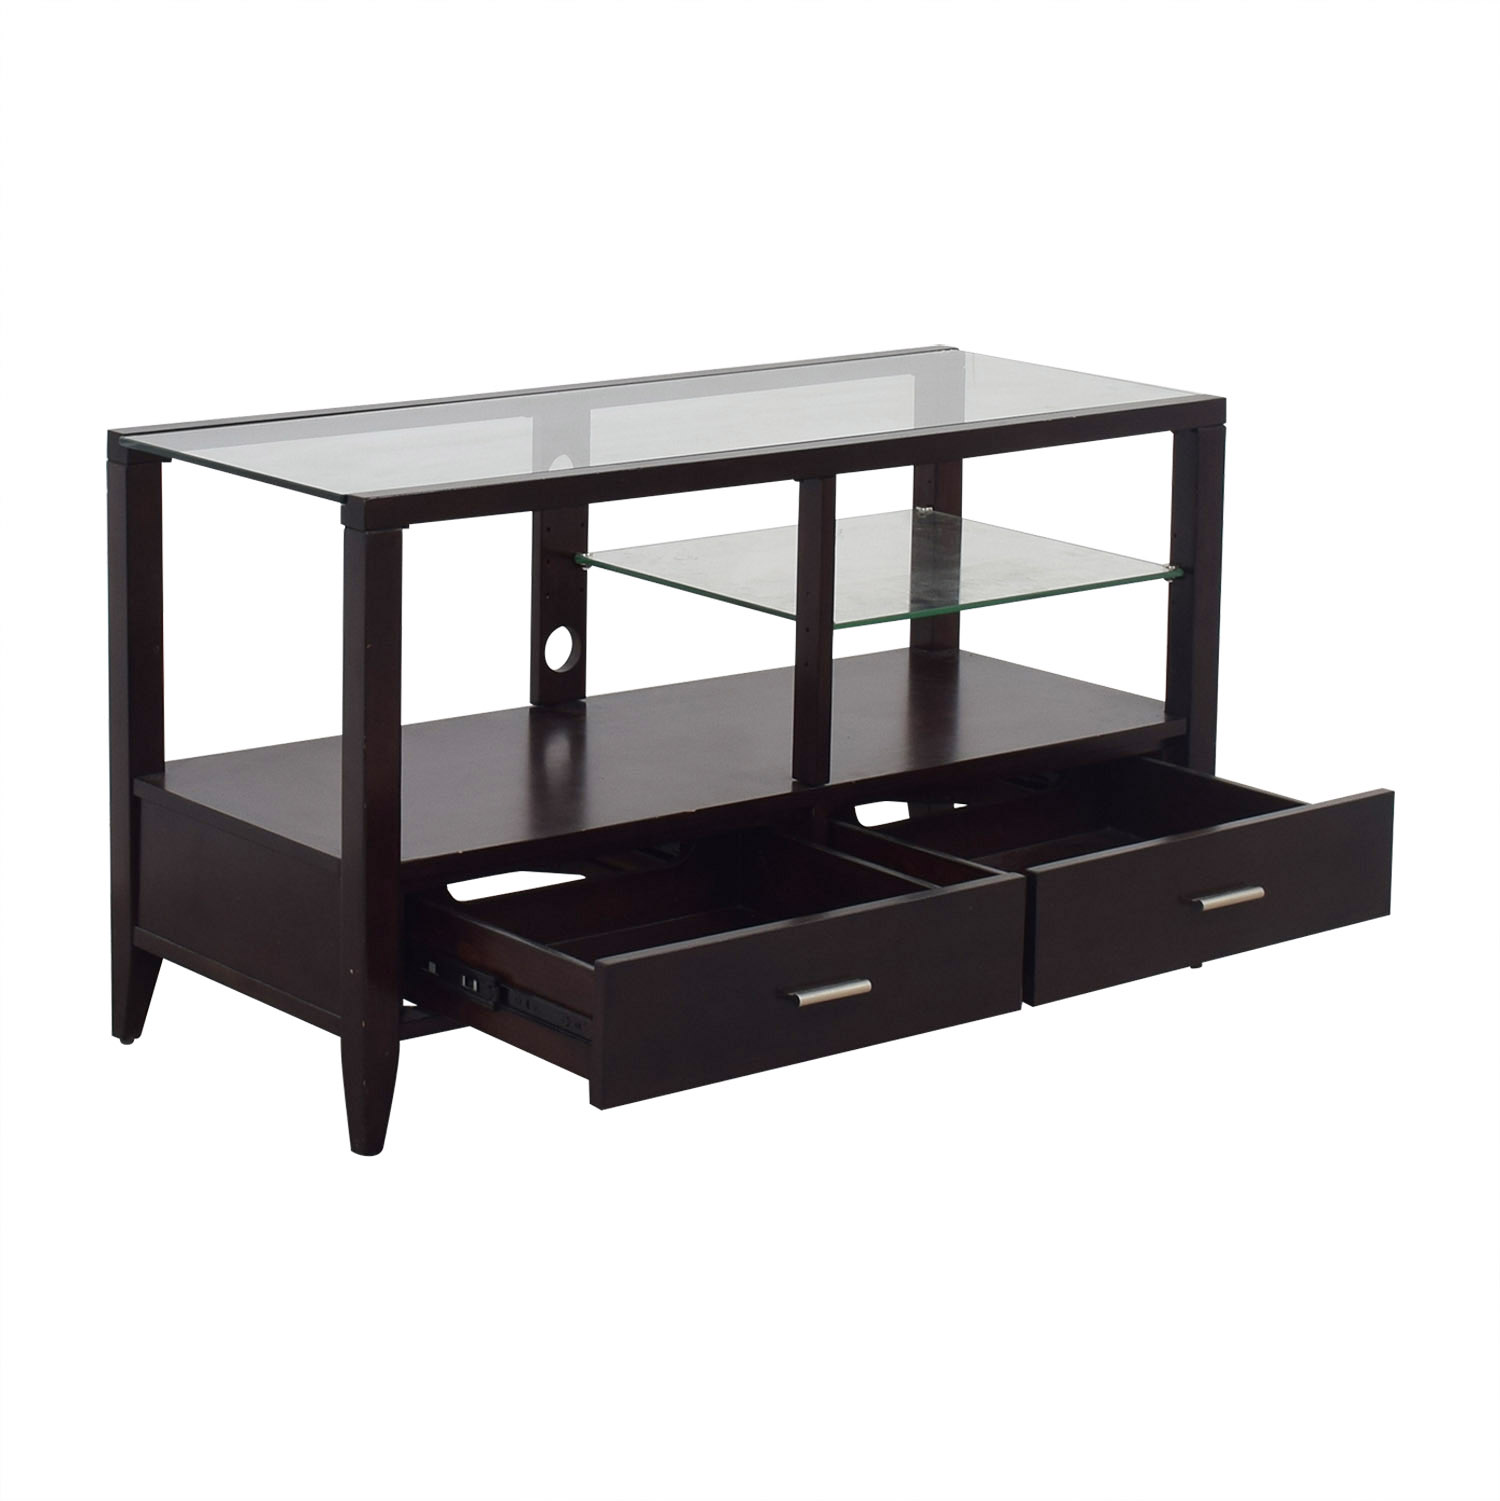 Belfort Furniture Belfort Furniture  Wood and Glass Entertainment Console Dark Cherry